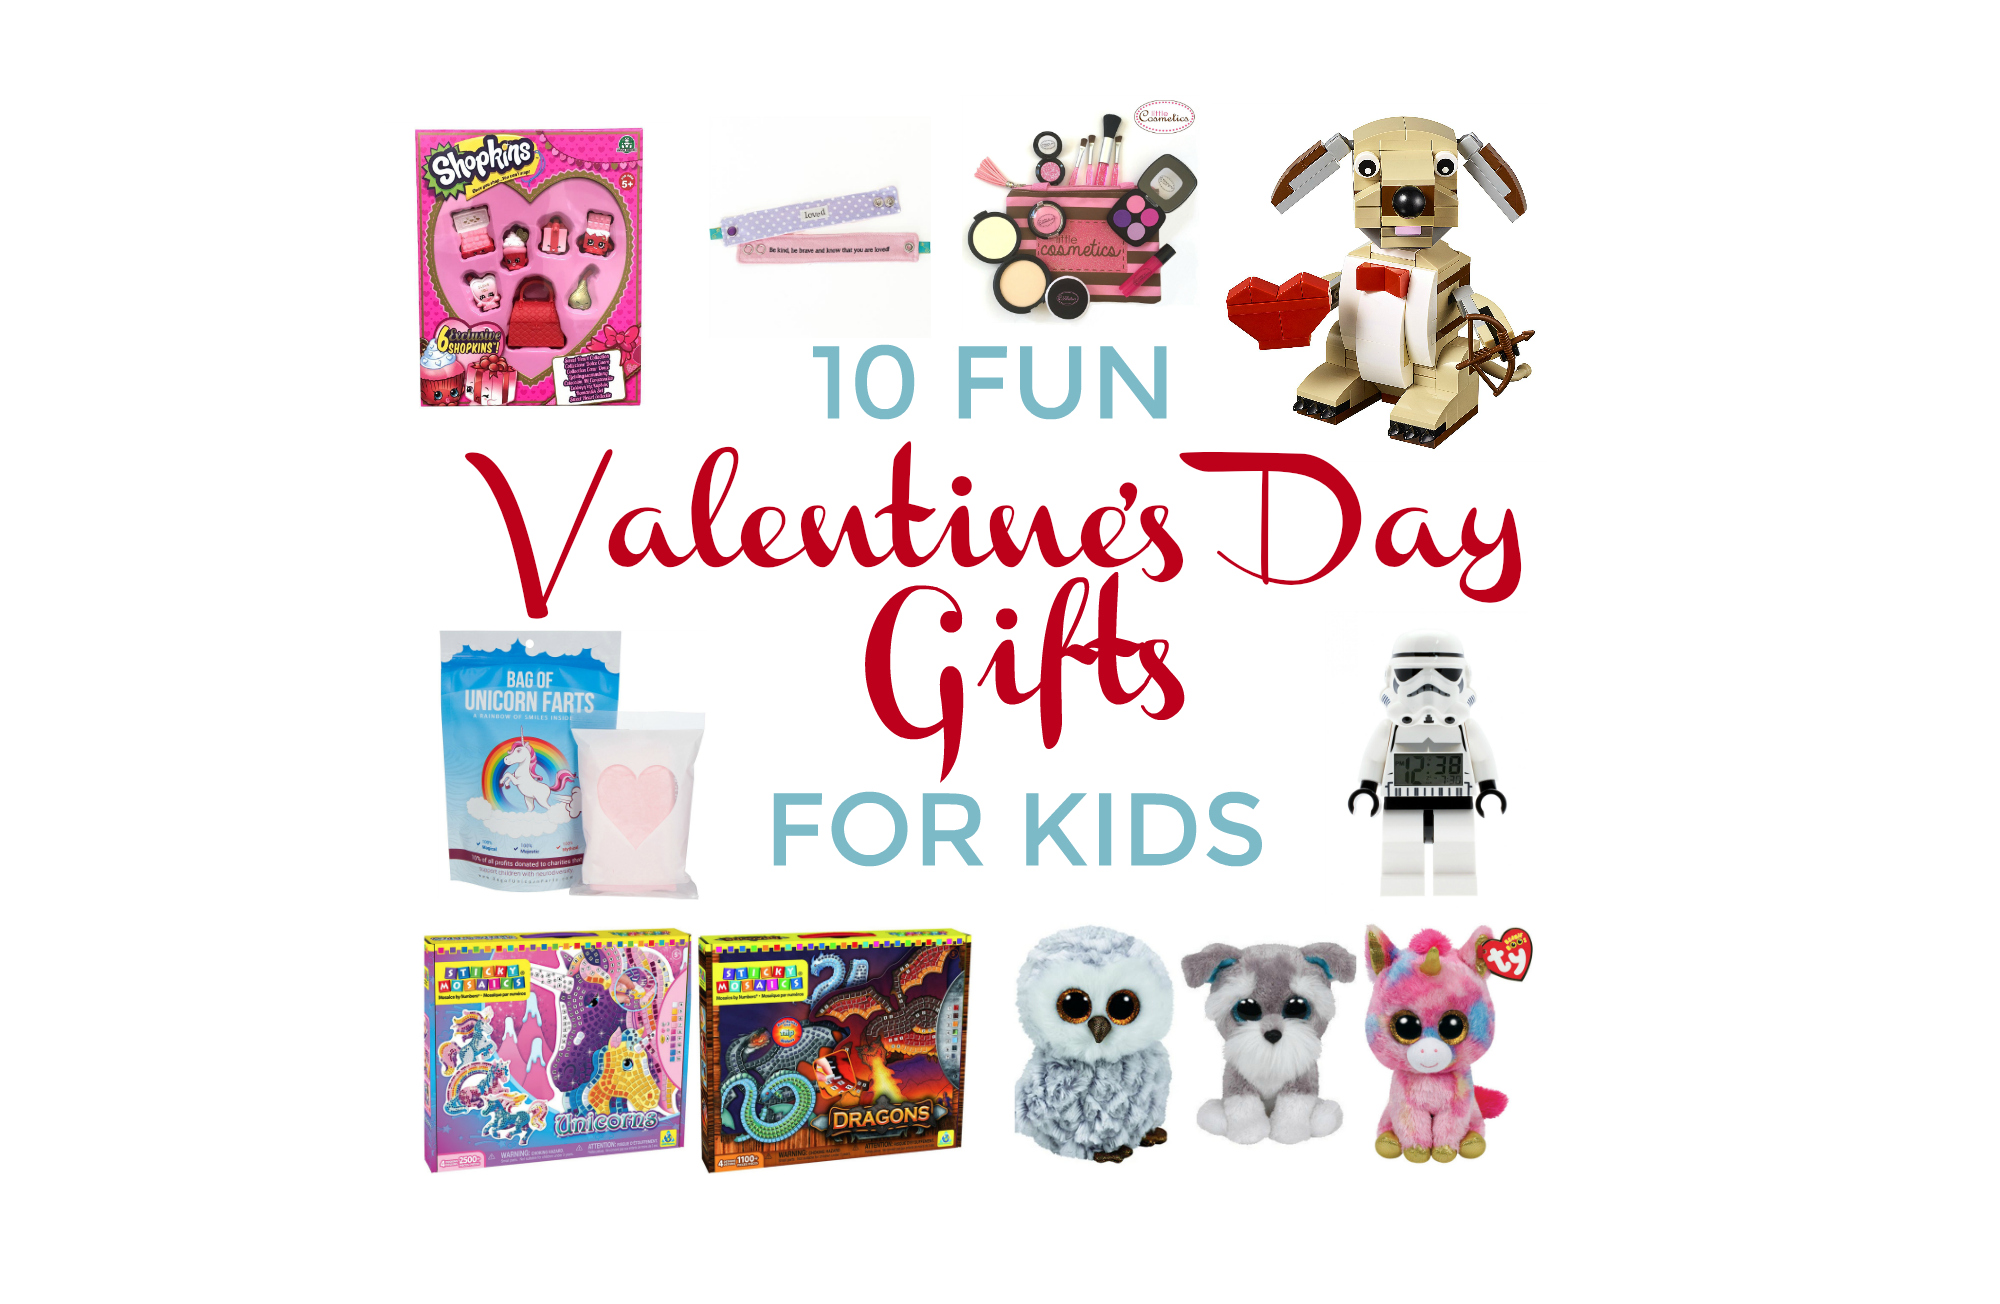 Valentine's Day gifts for kids collage